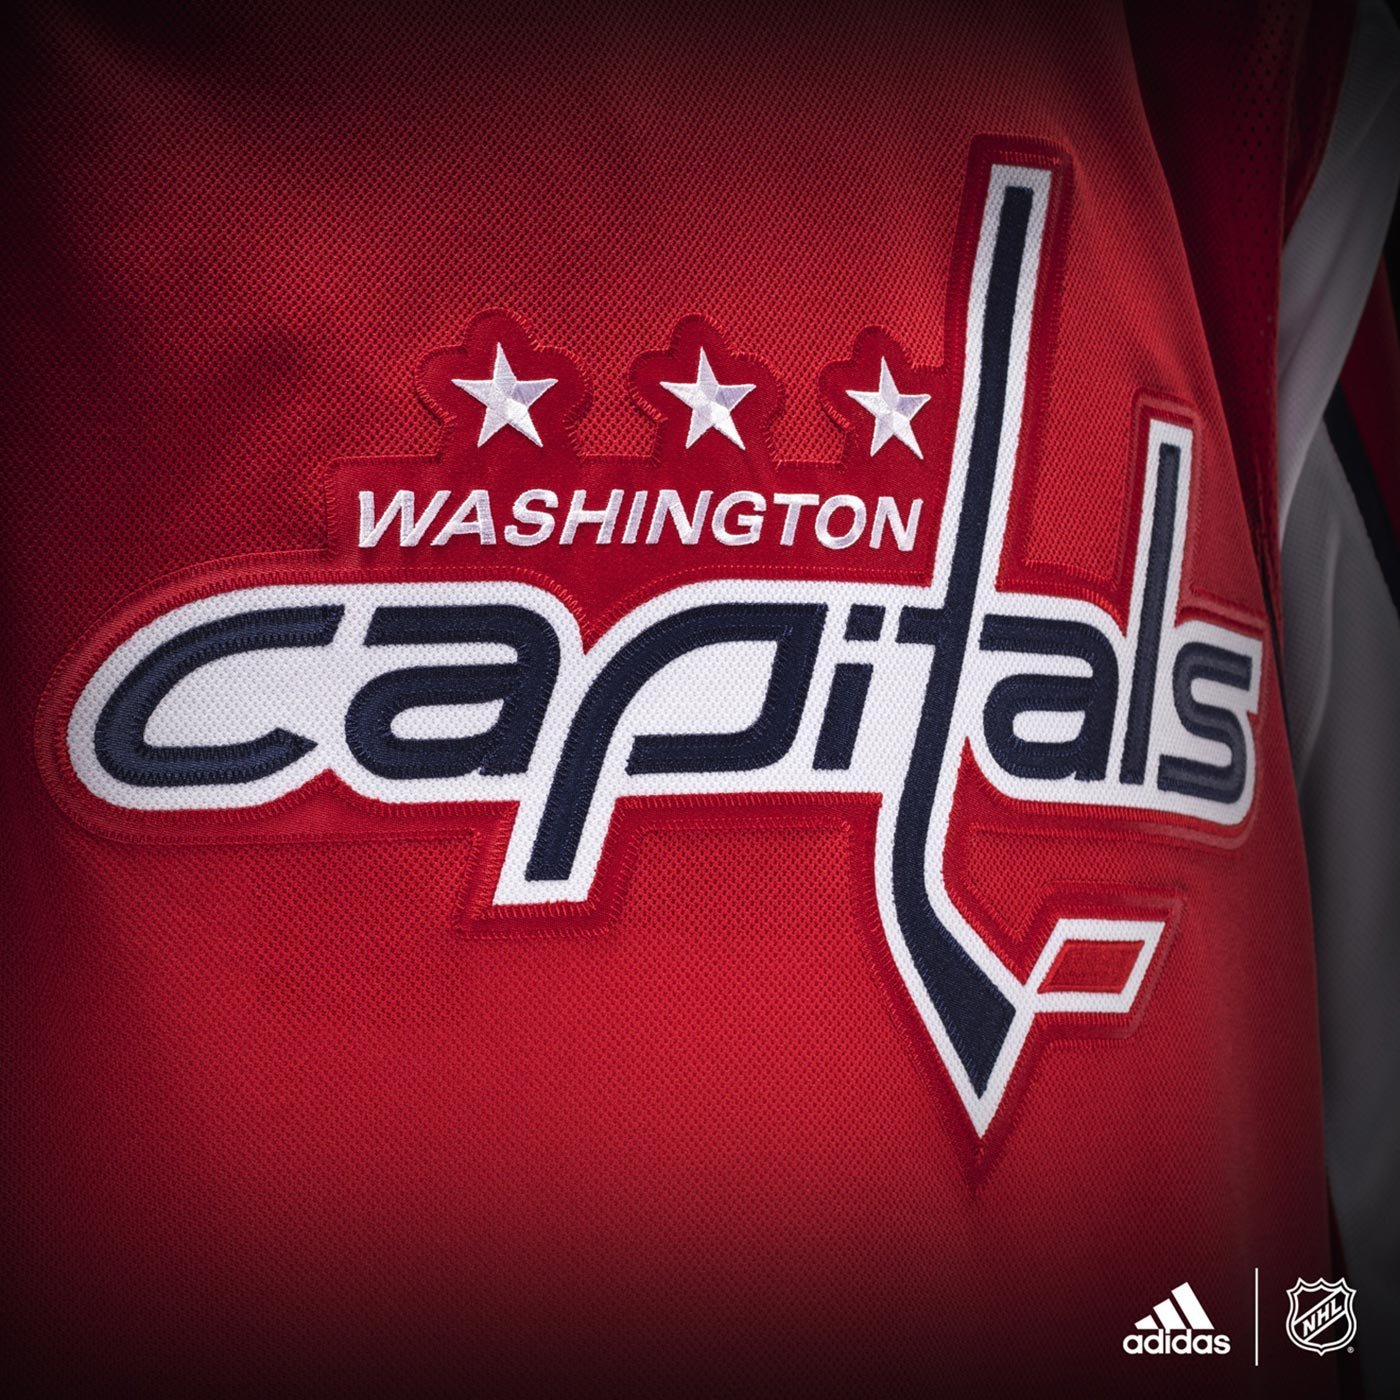 separation shoes ca421 9f0f2 Men's Washington Capitals adidas Home Red Authentic Pro ...